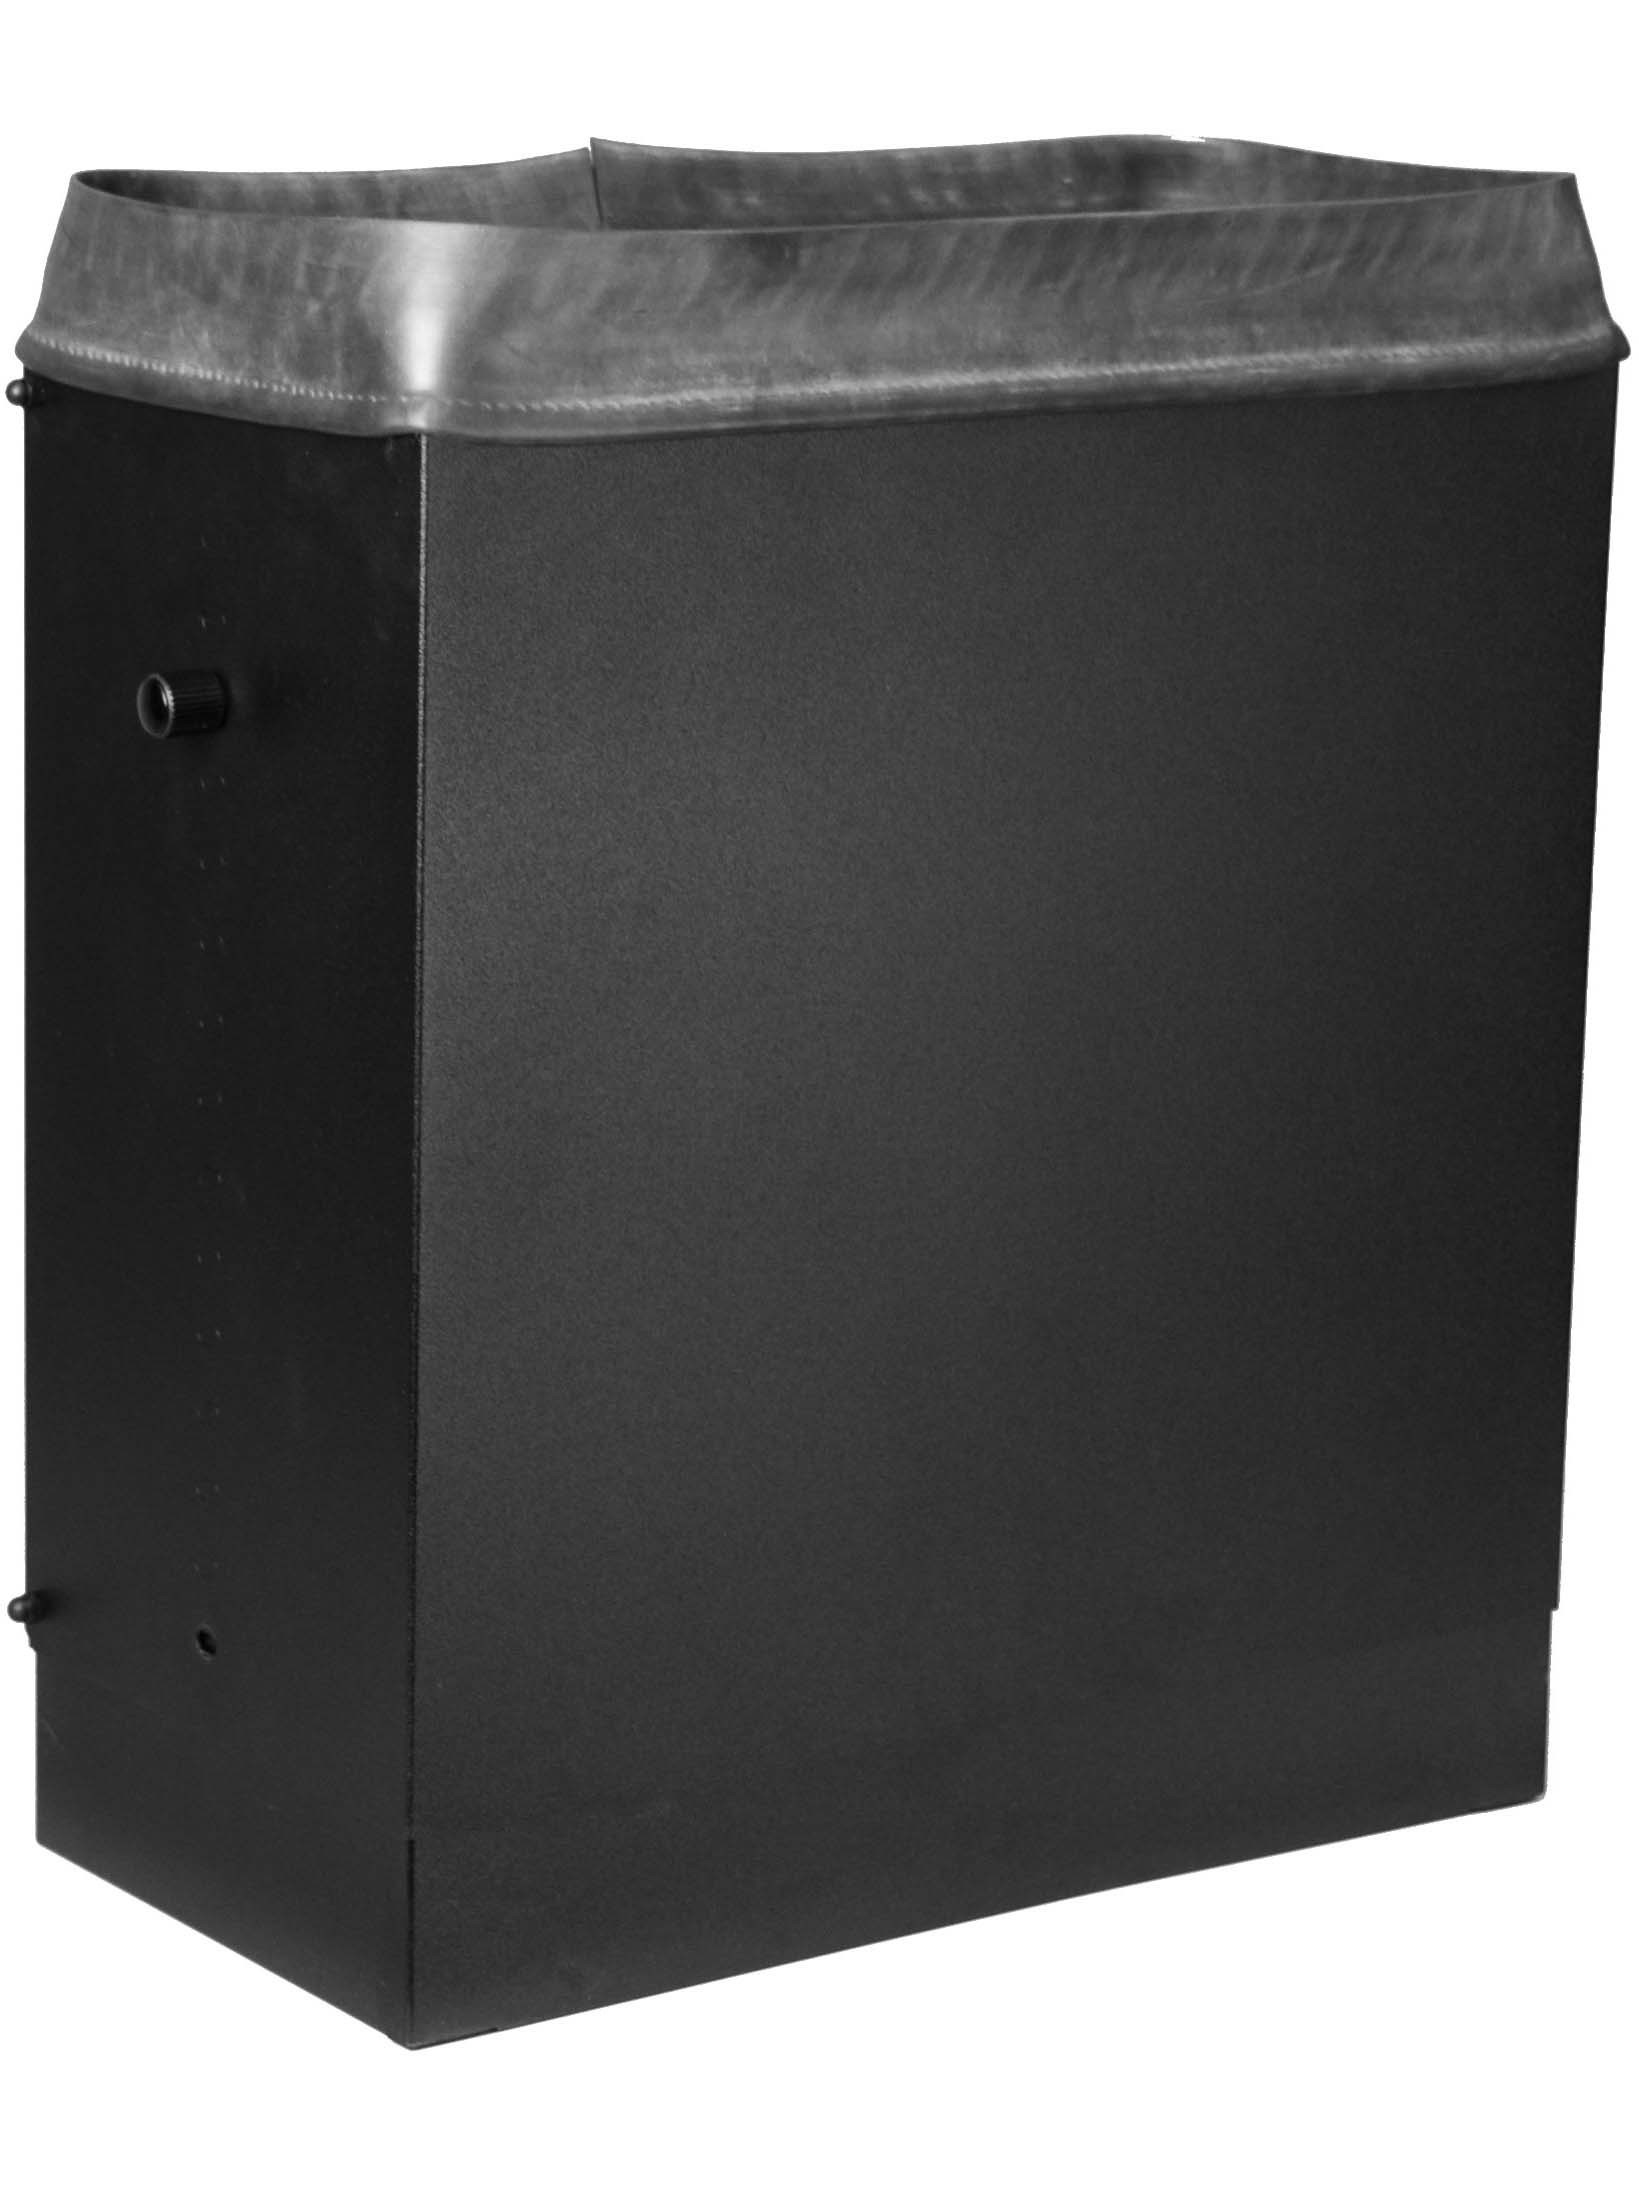 Exhaust chimney for 42″D enclosure (18″-32″)